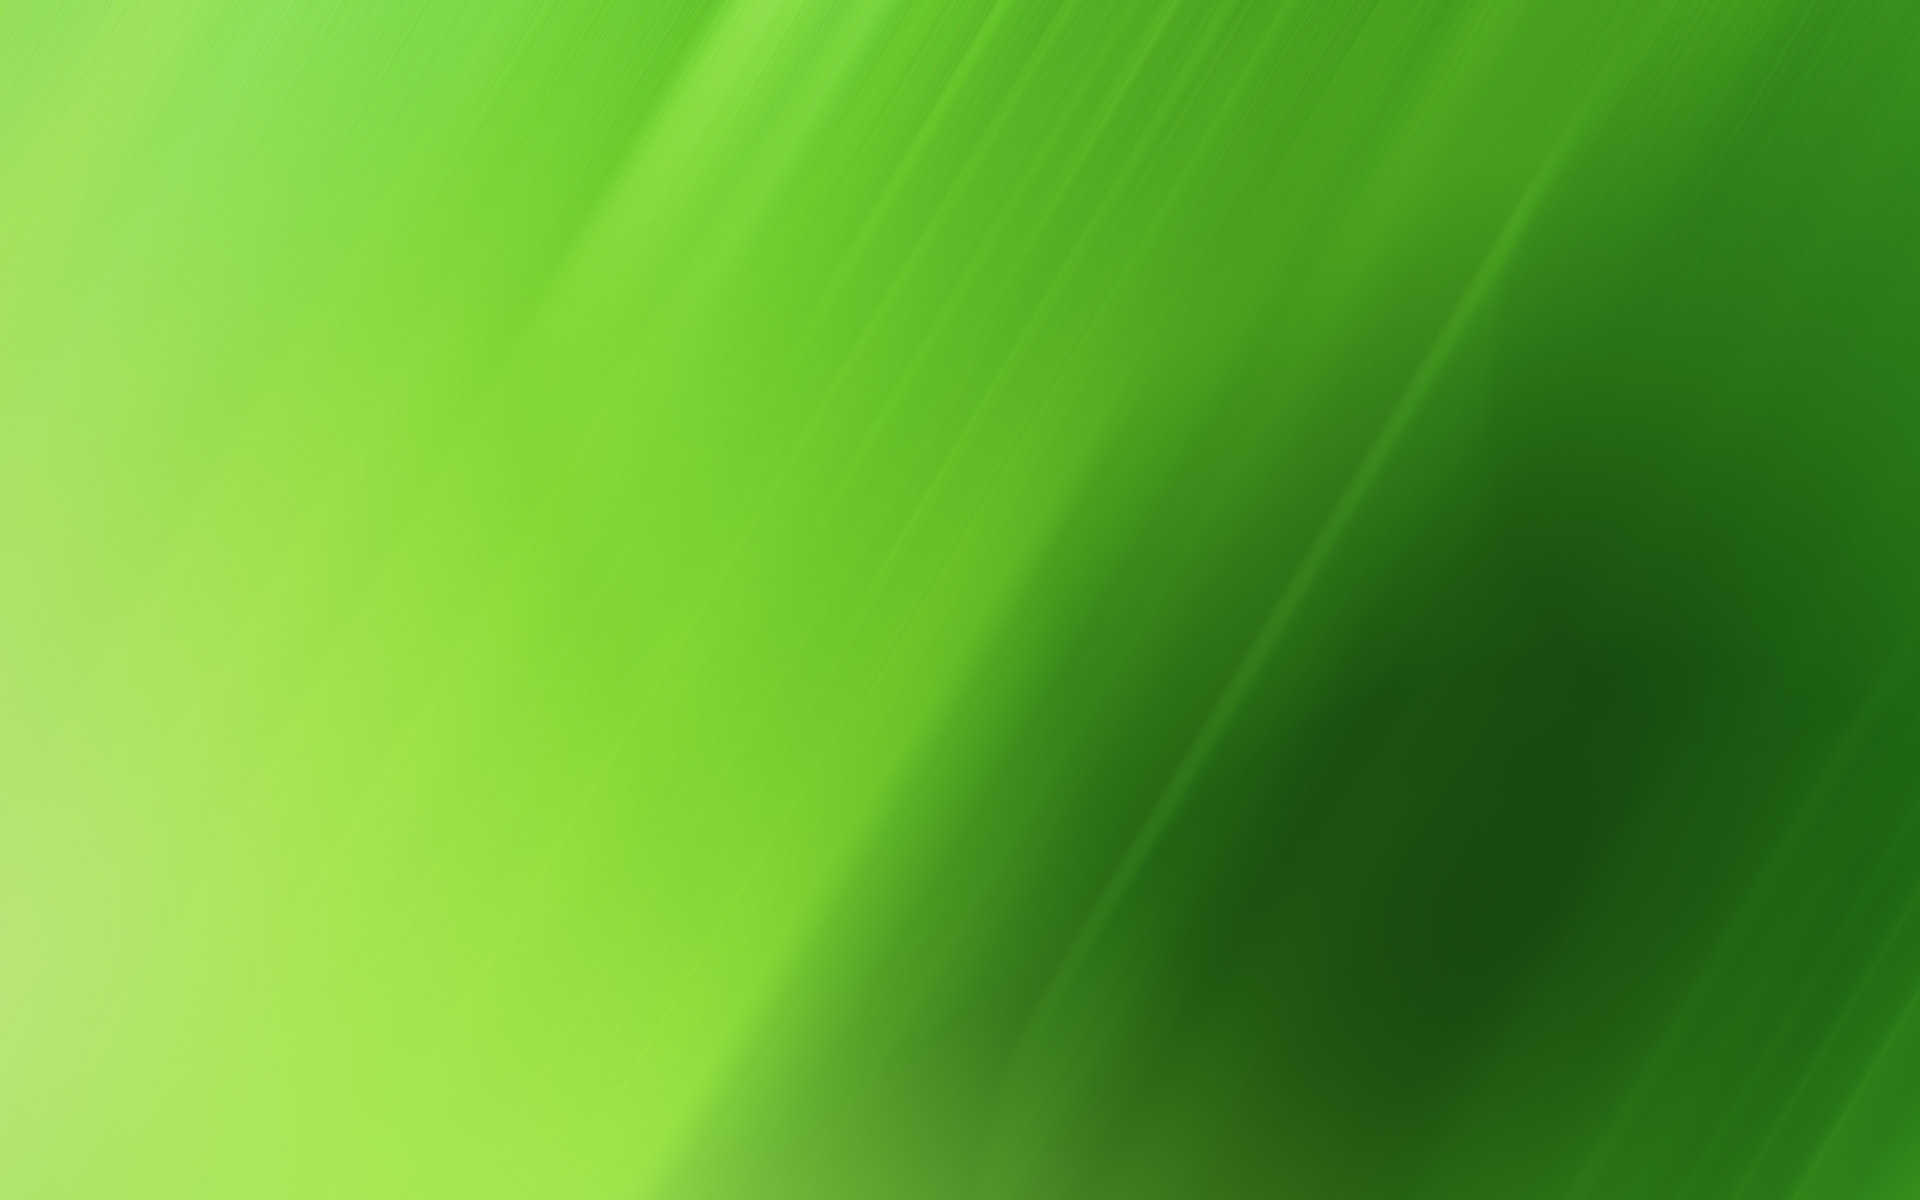 Gradient Desktop Wallpapers